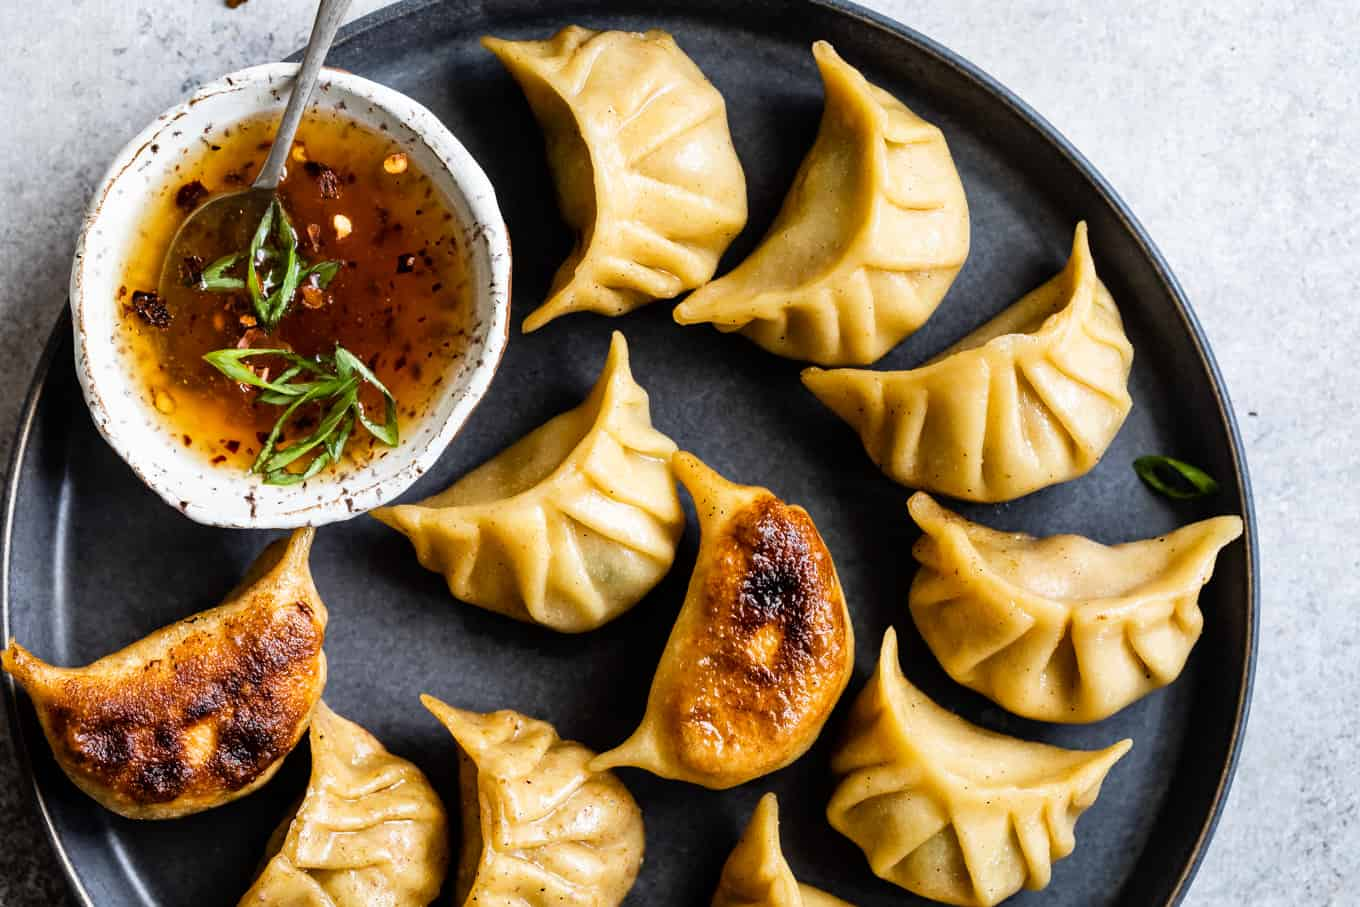 Gluten-Free Dumpling Wrappers without Xanthan Gum